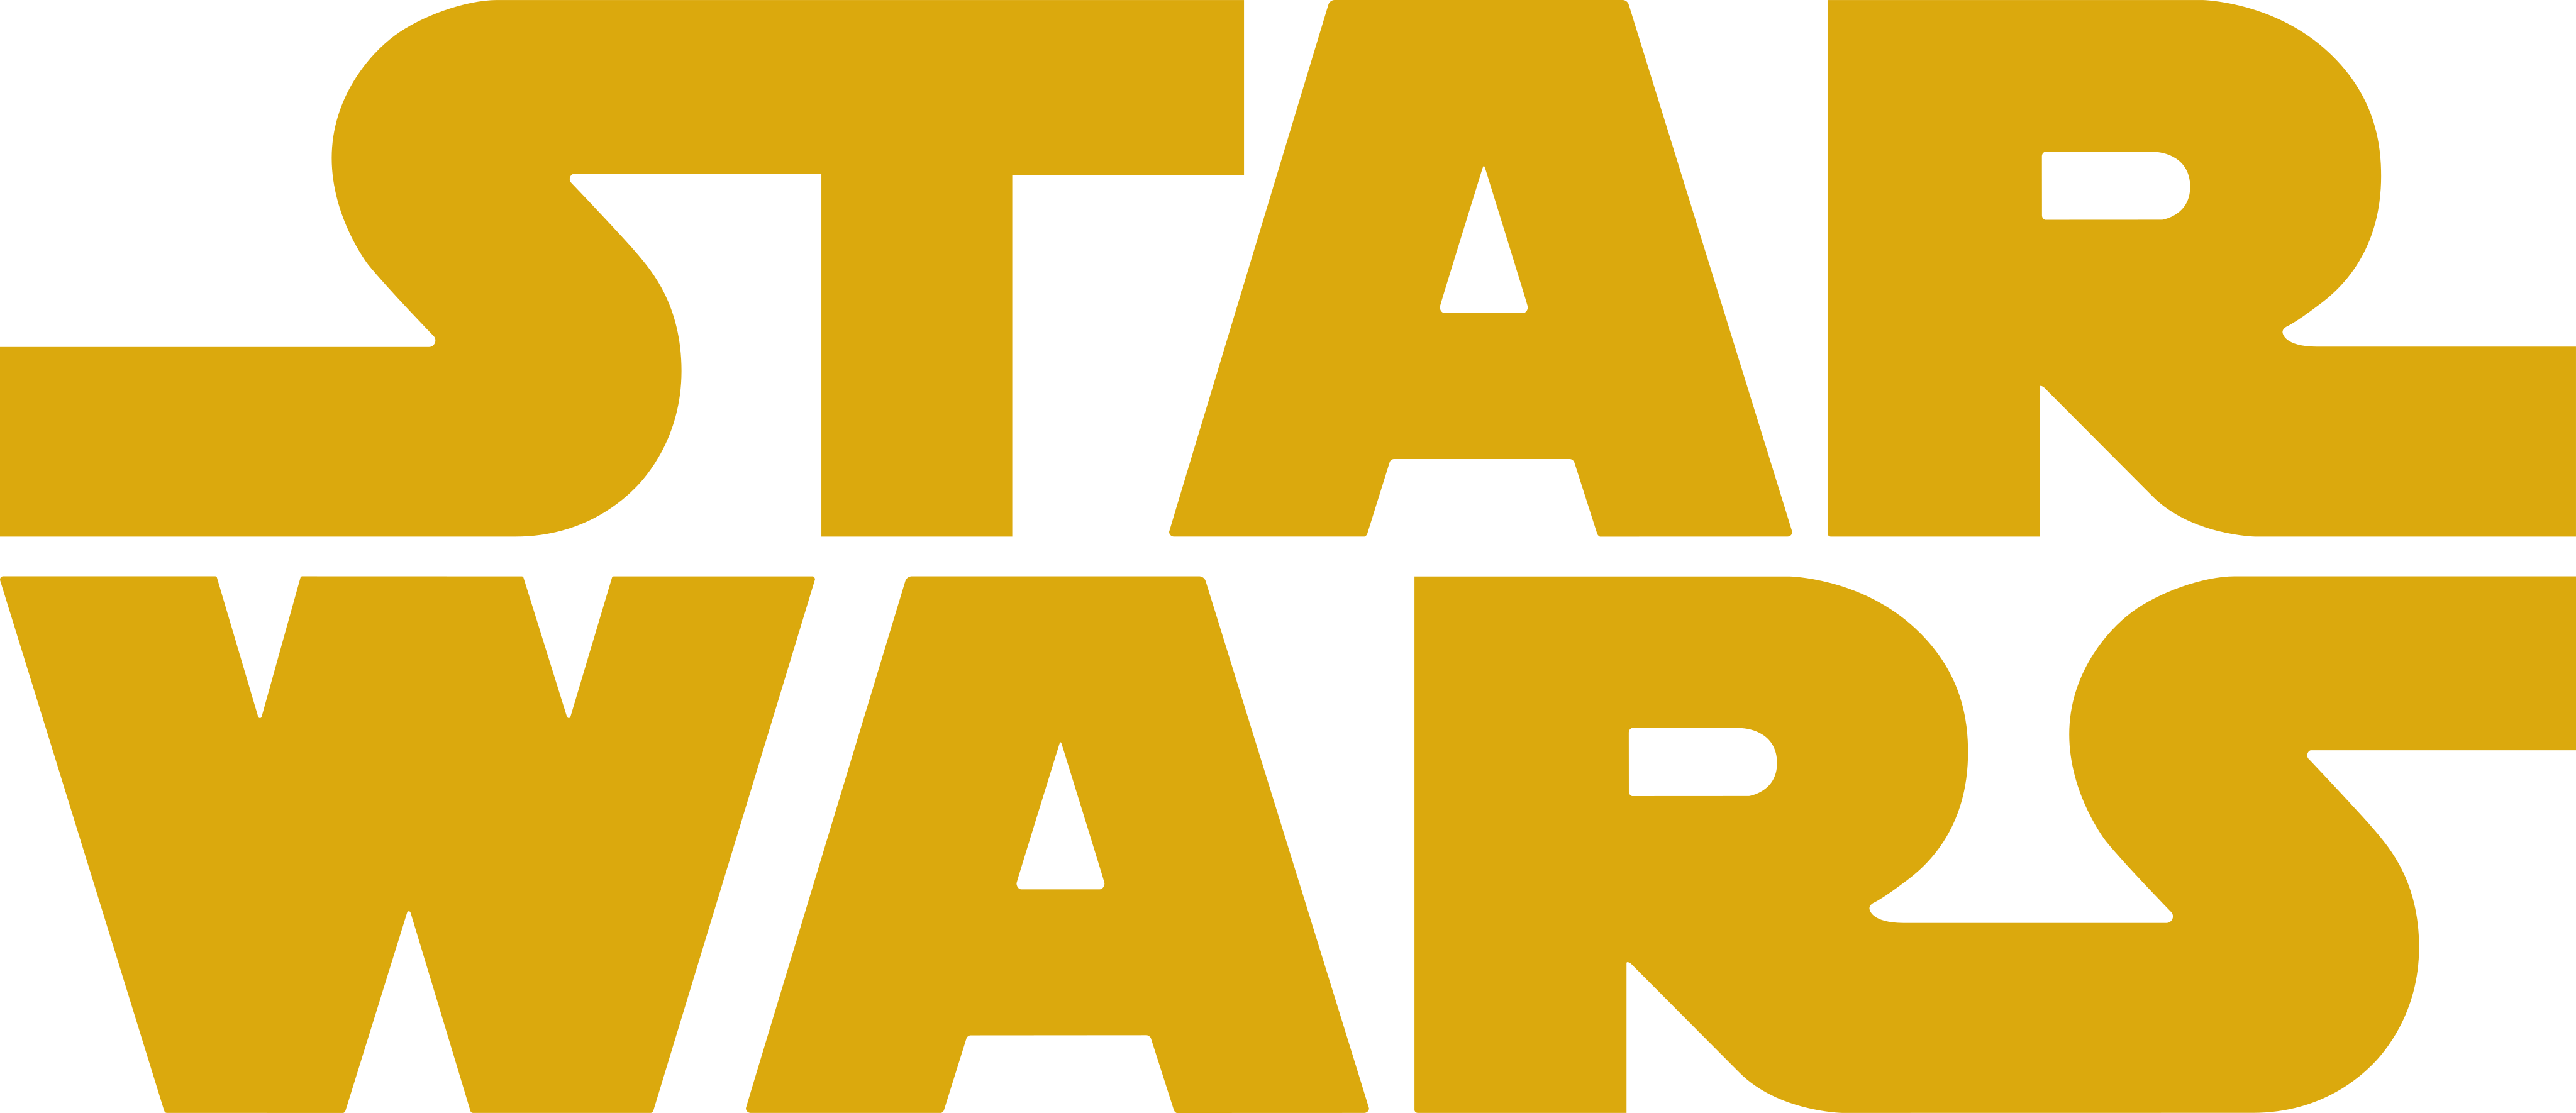 star wars logo 3 1 - Star Wars Logo